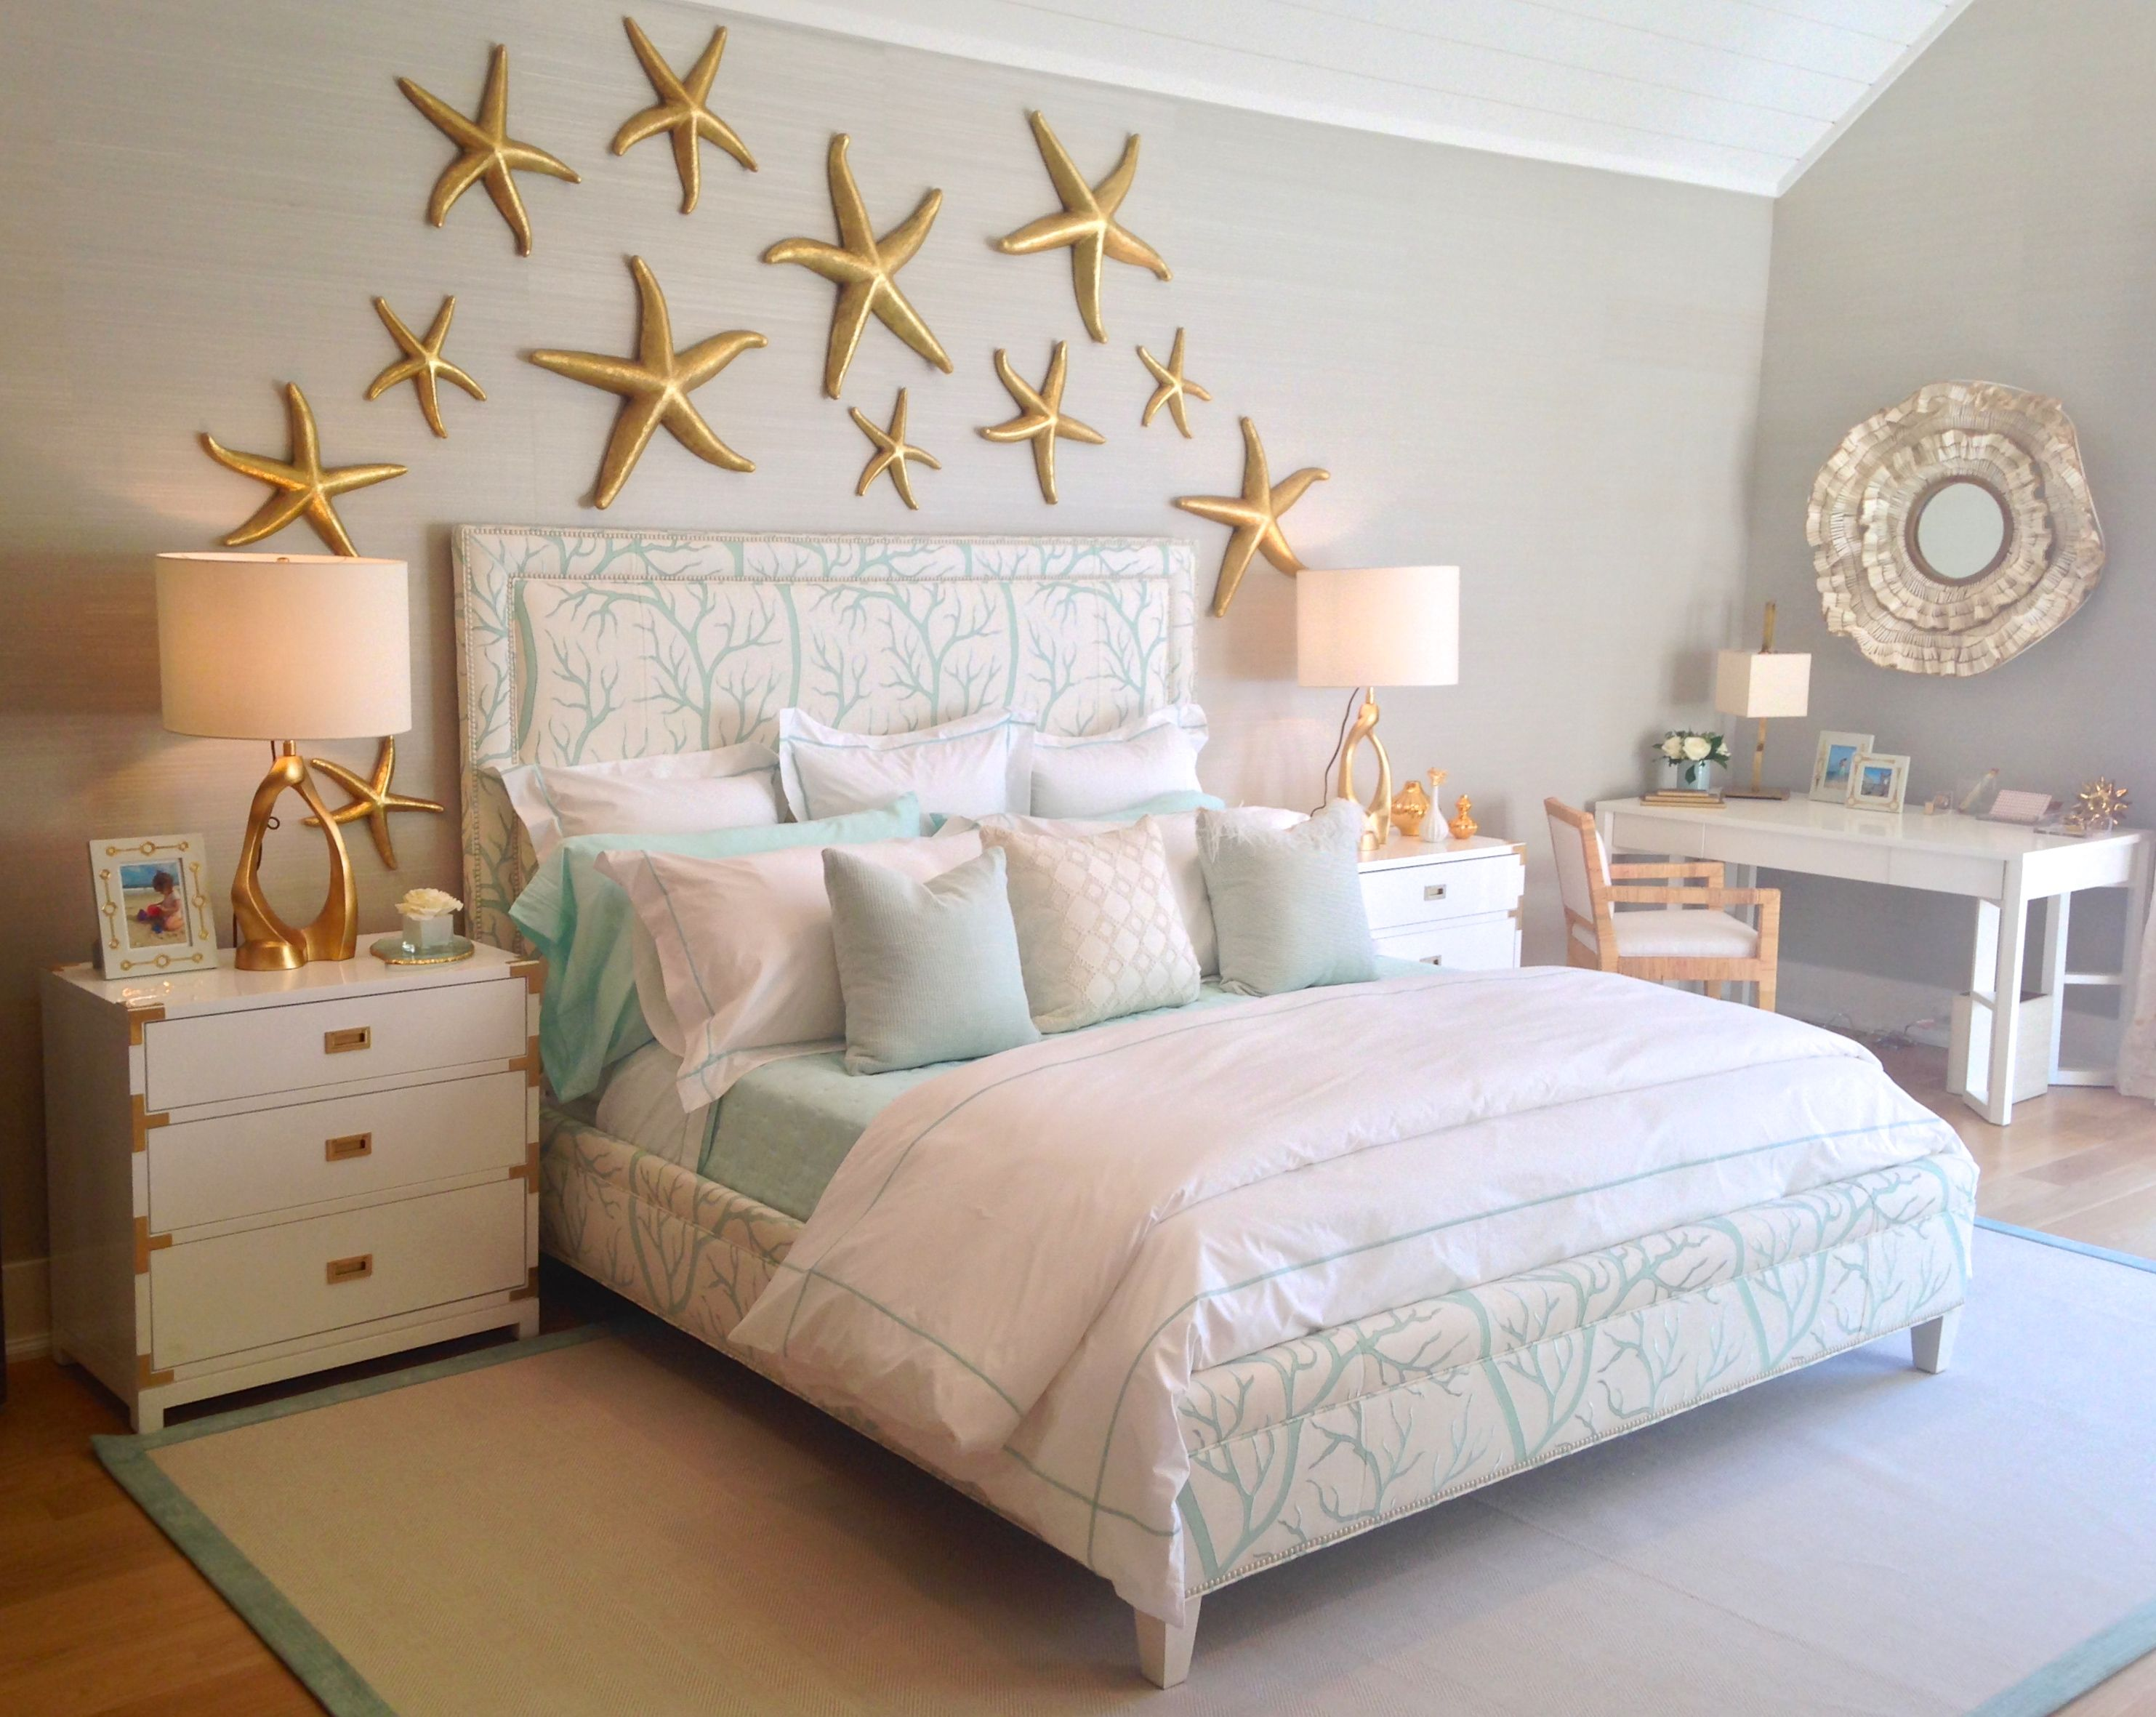 Ocean Decor Bedroom